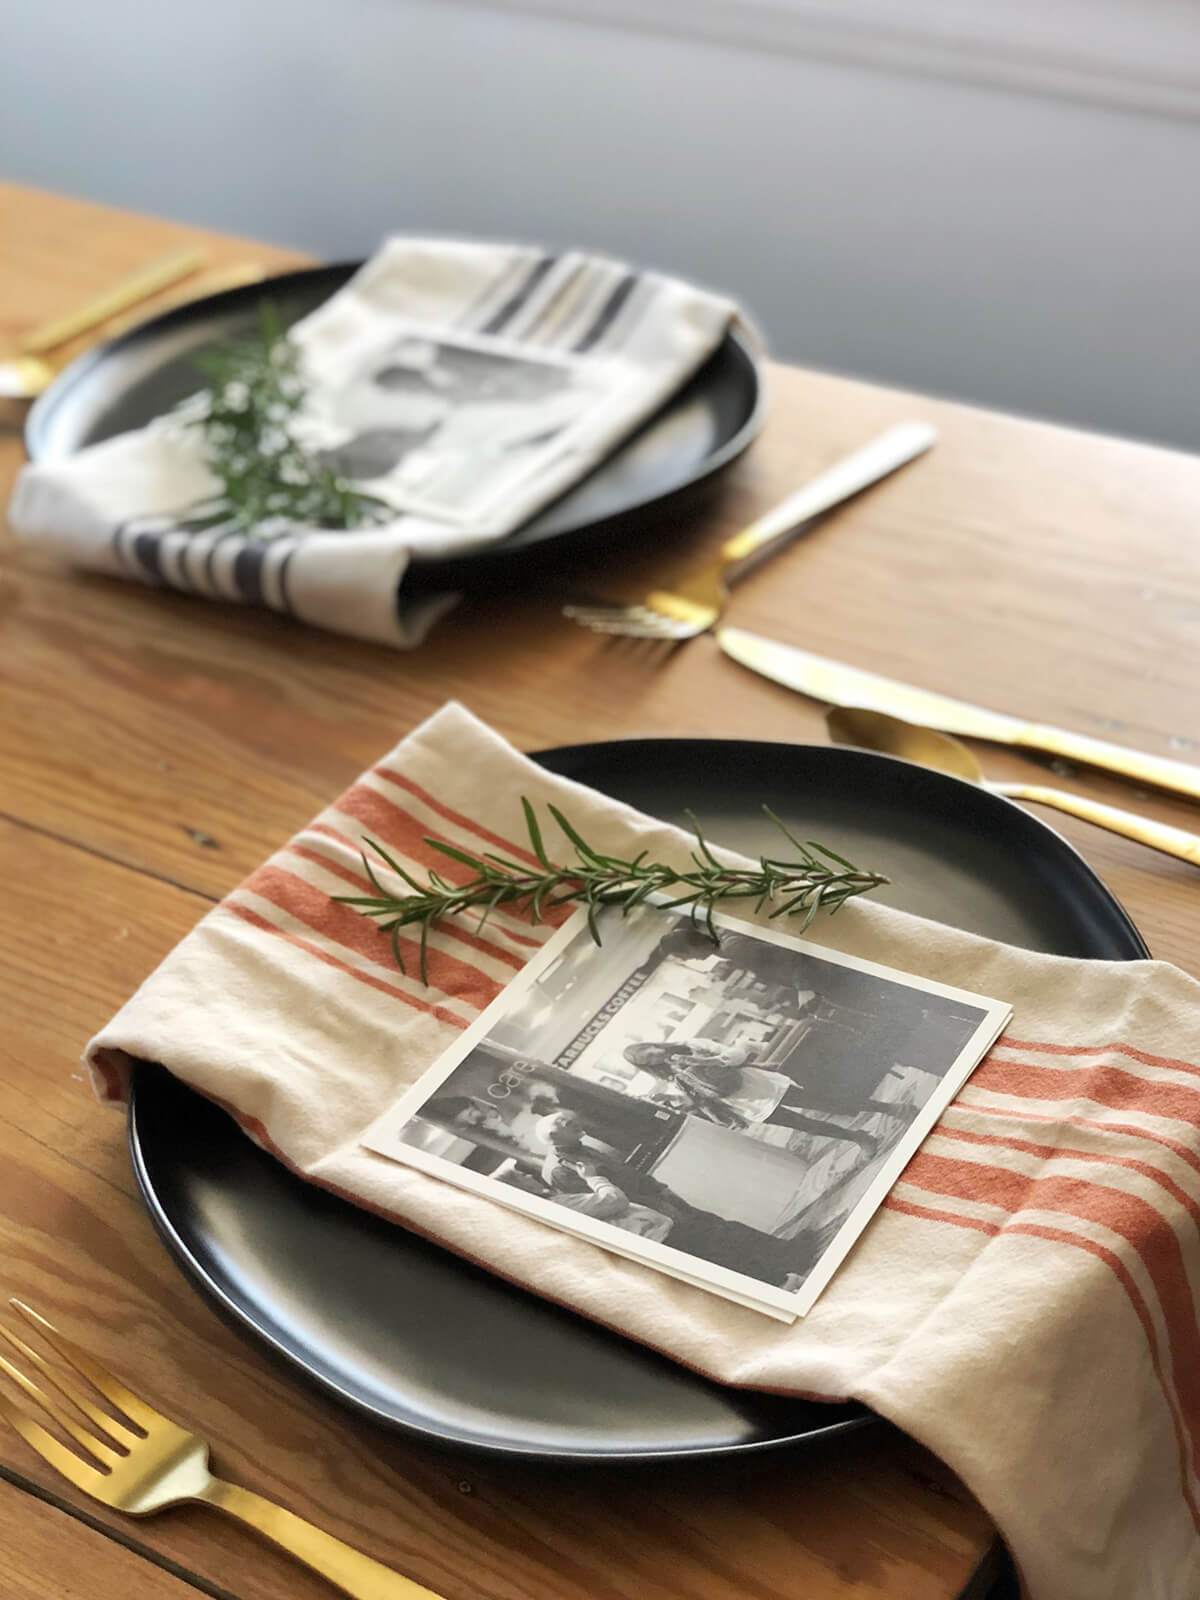 Photos used as table place settings for holiday meal